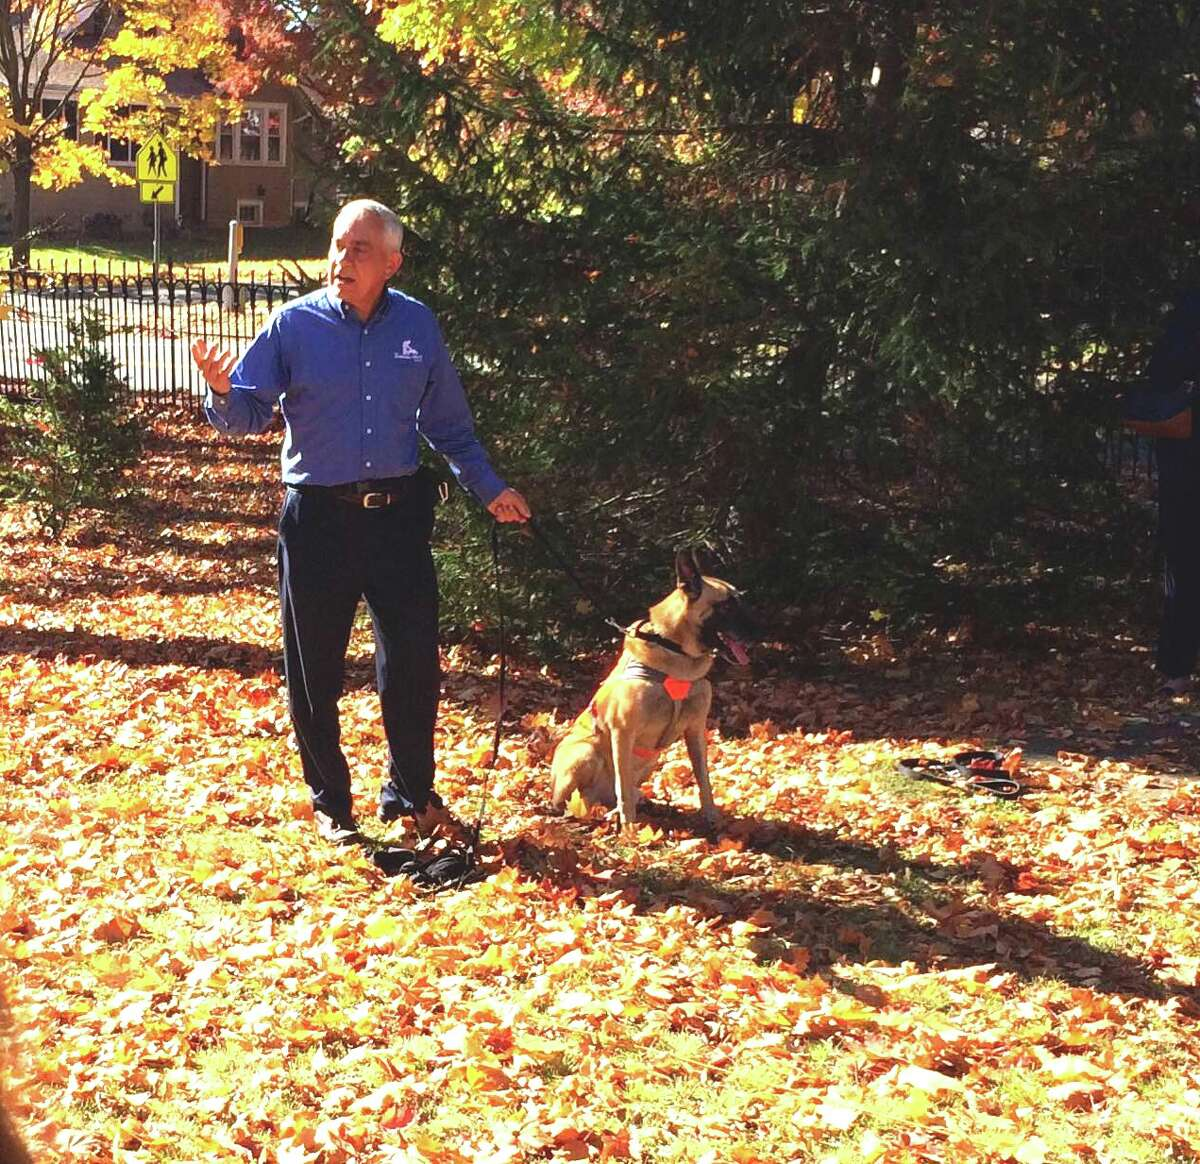 Col. Perry Baltimore from the Marshall Legacy Institute with Dino, a mine-detecting German shepherd at the Beacon School.